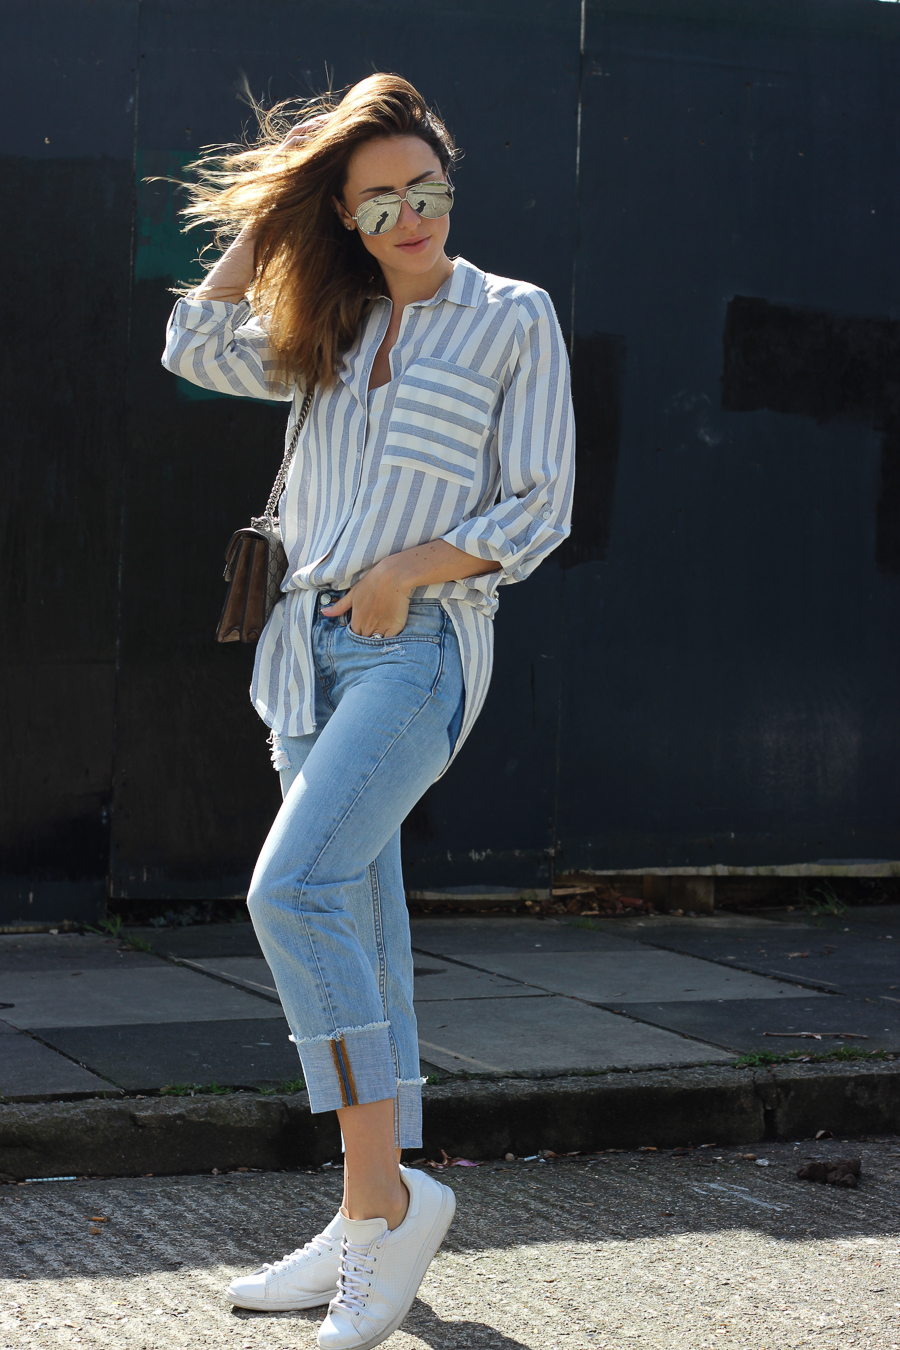 Clutch and carry on - uk fashion blogger - uk travel blogger - sabrina chakici - matalan striped shirt, all saints boyfriend jeans, gucci dionysus supreme-11